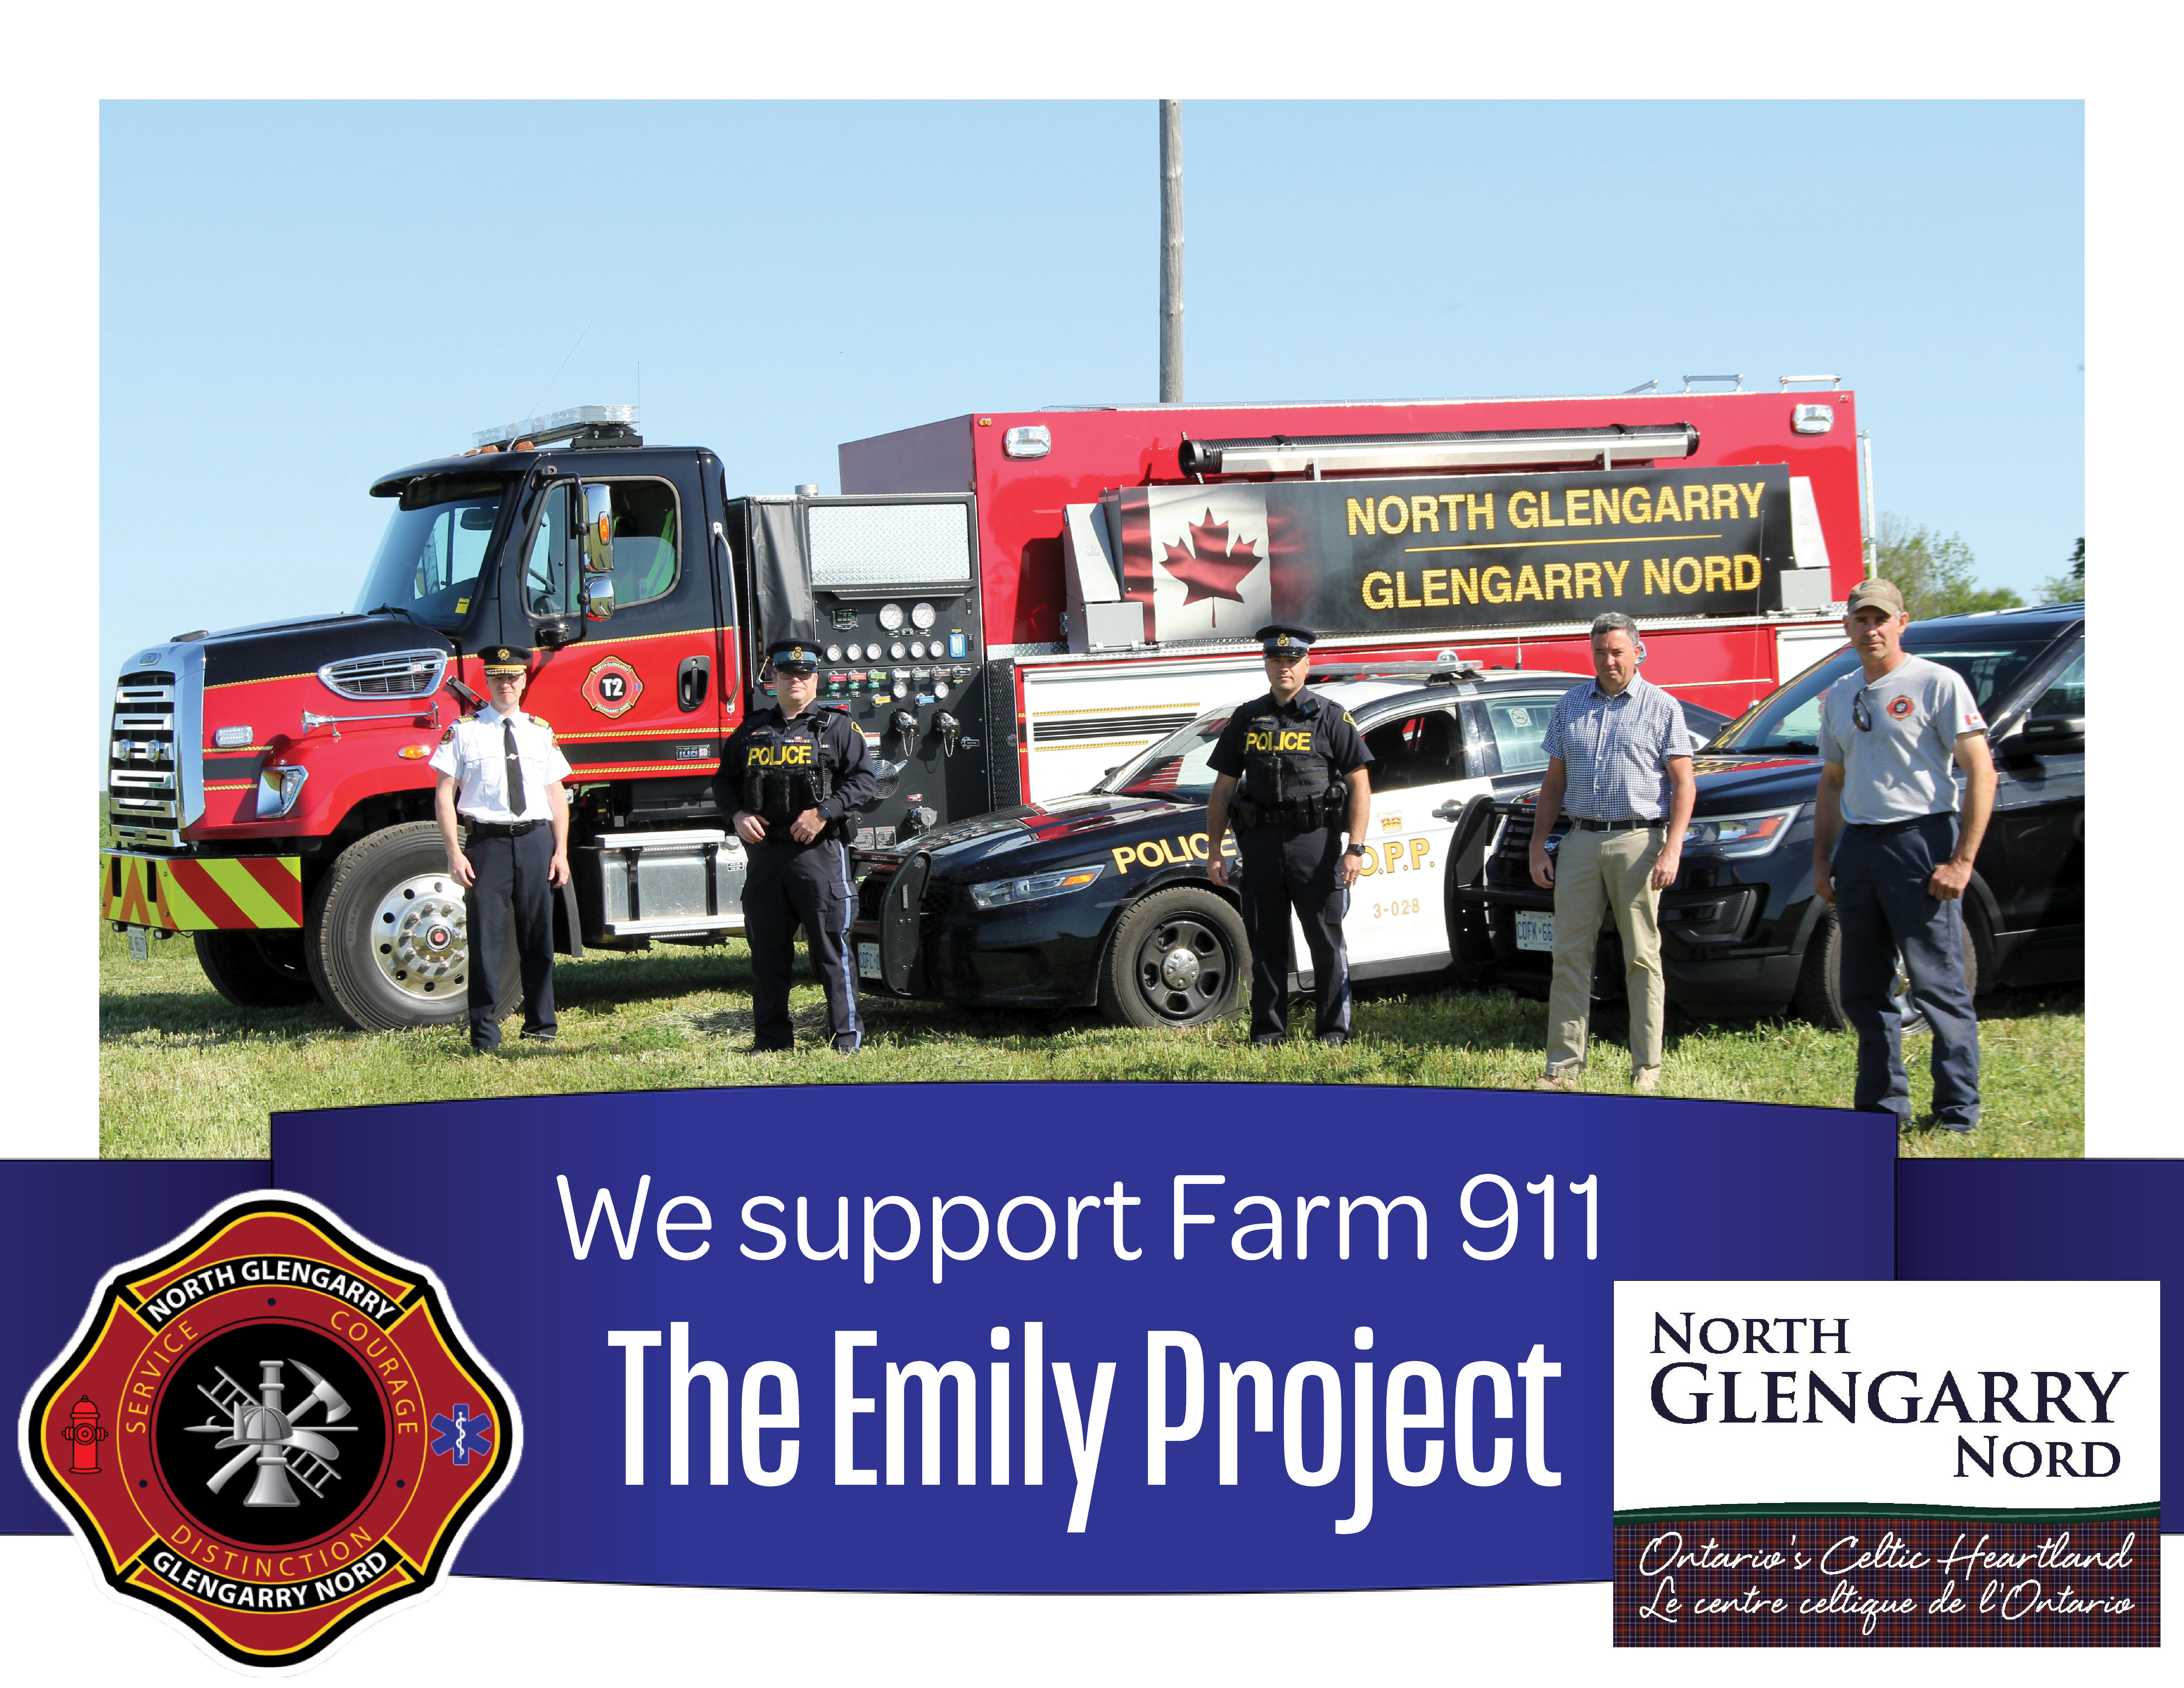 North Glengarry supports Farm 911 - The Emily Project